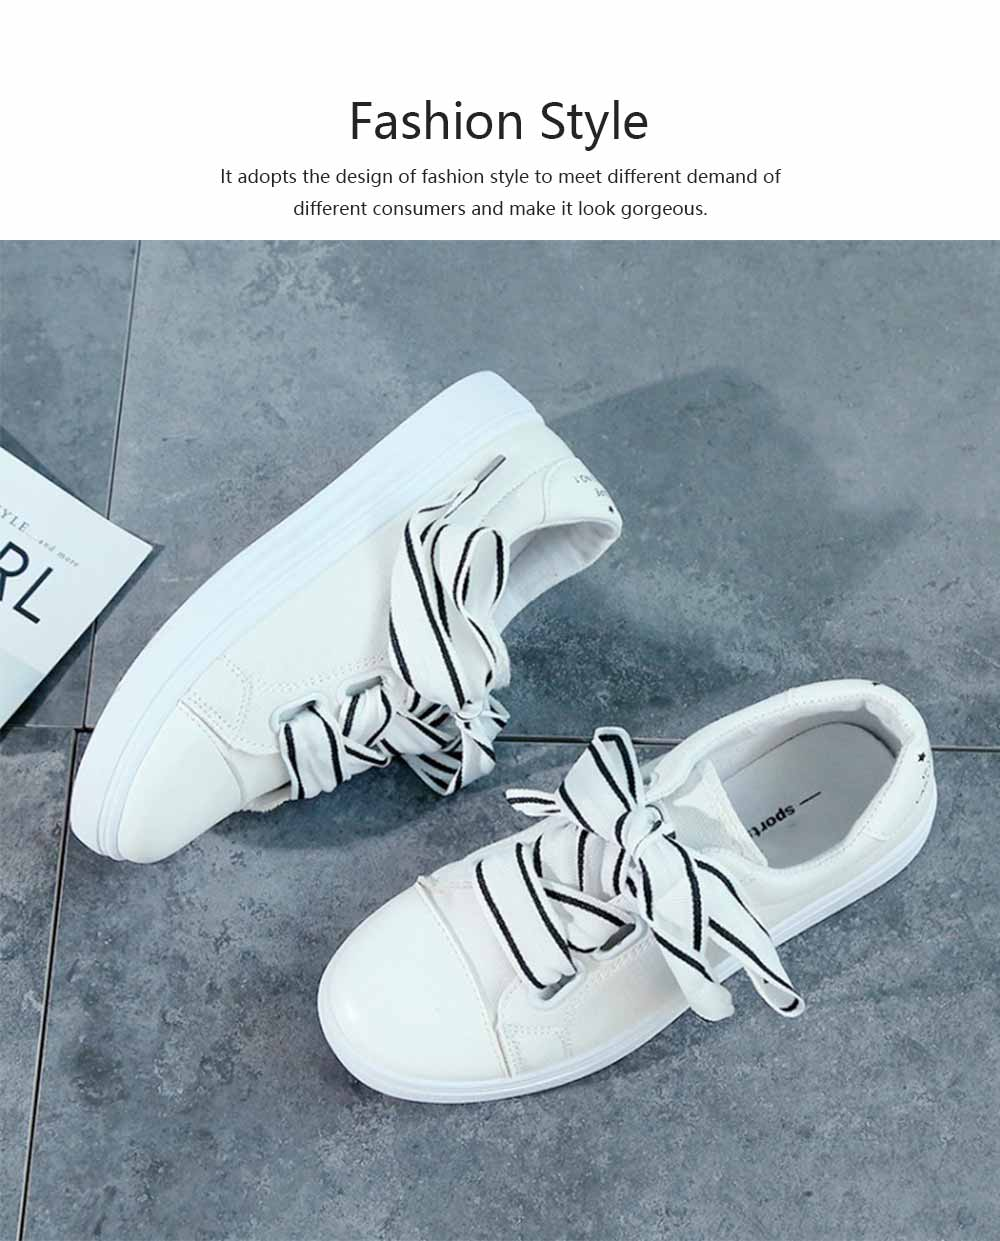 Low Tops Canvas Shoes for Women and Girls Fashion Style Breathable Canvas Microfiber Lining Rubber Sole Chalaza sneakers 1